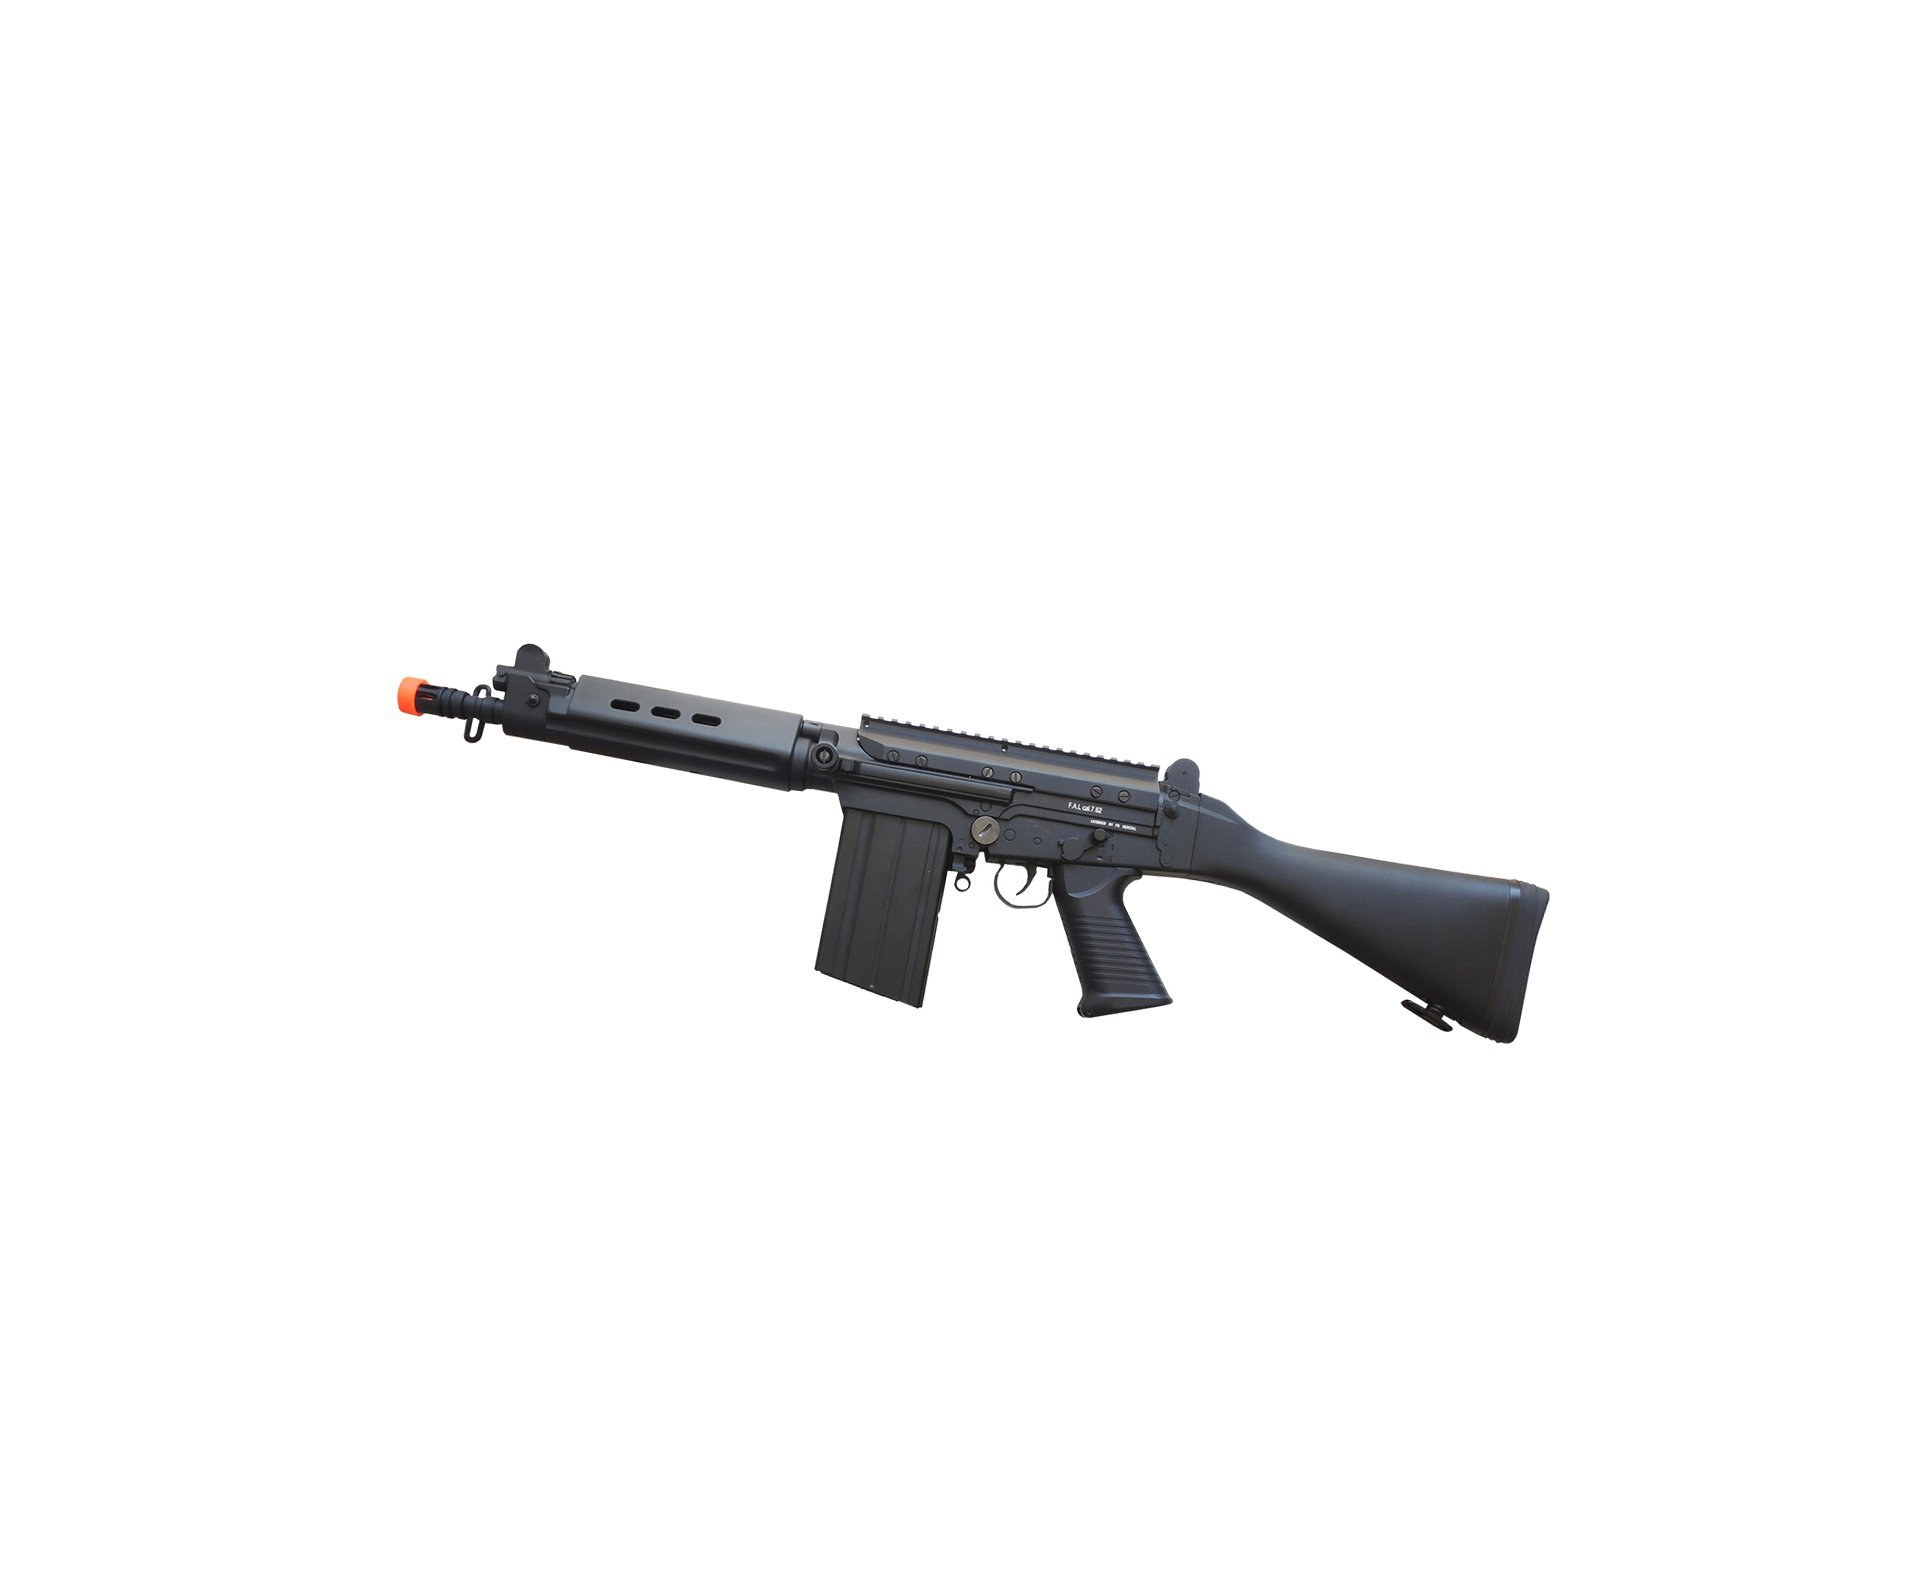 Rifle De Airsoft Fn Herstal Fal - Blow Back - Cal 6,0mm - Bivolt - Cybergun